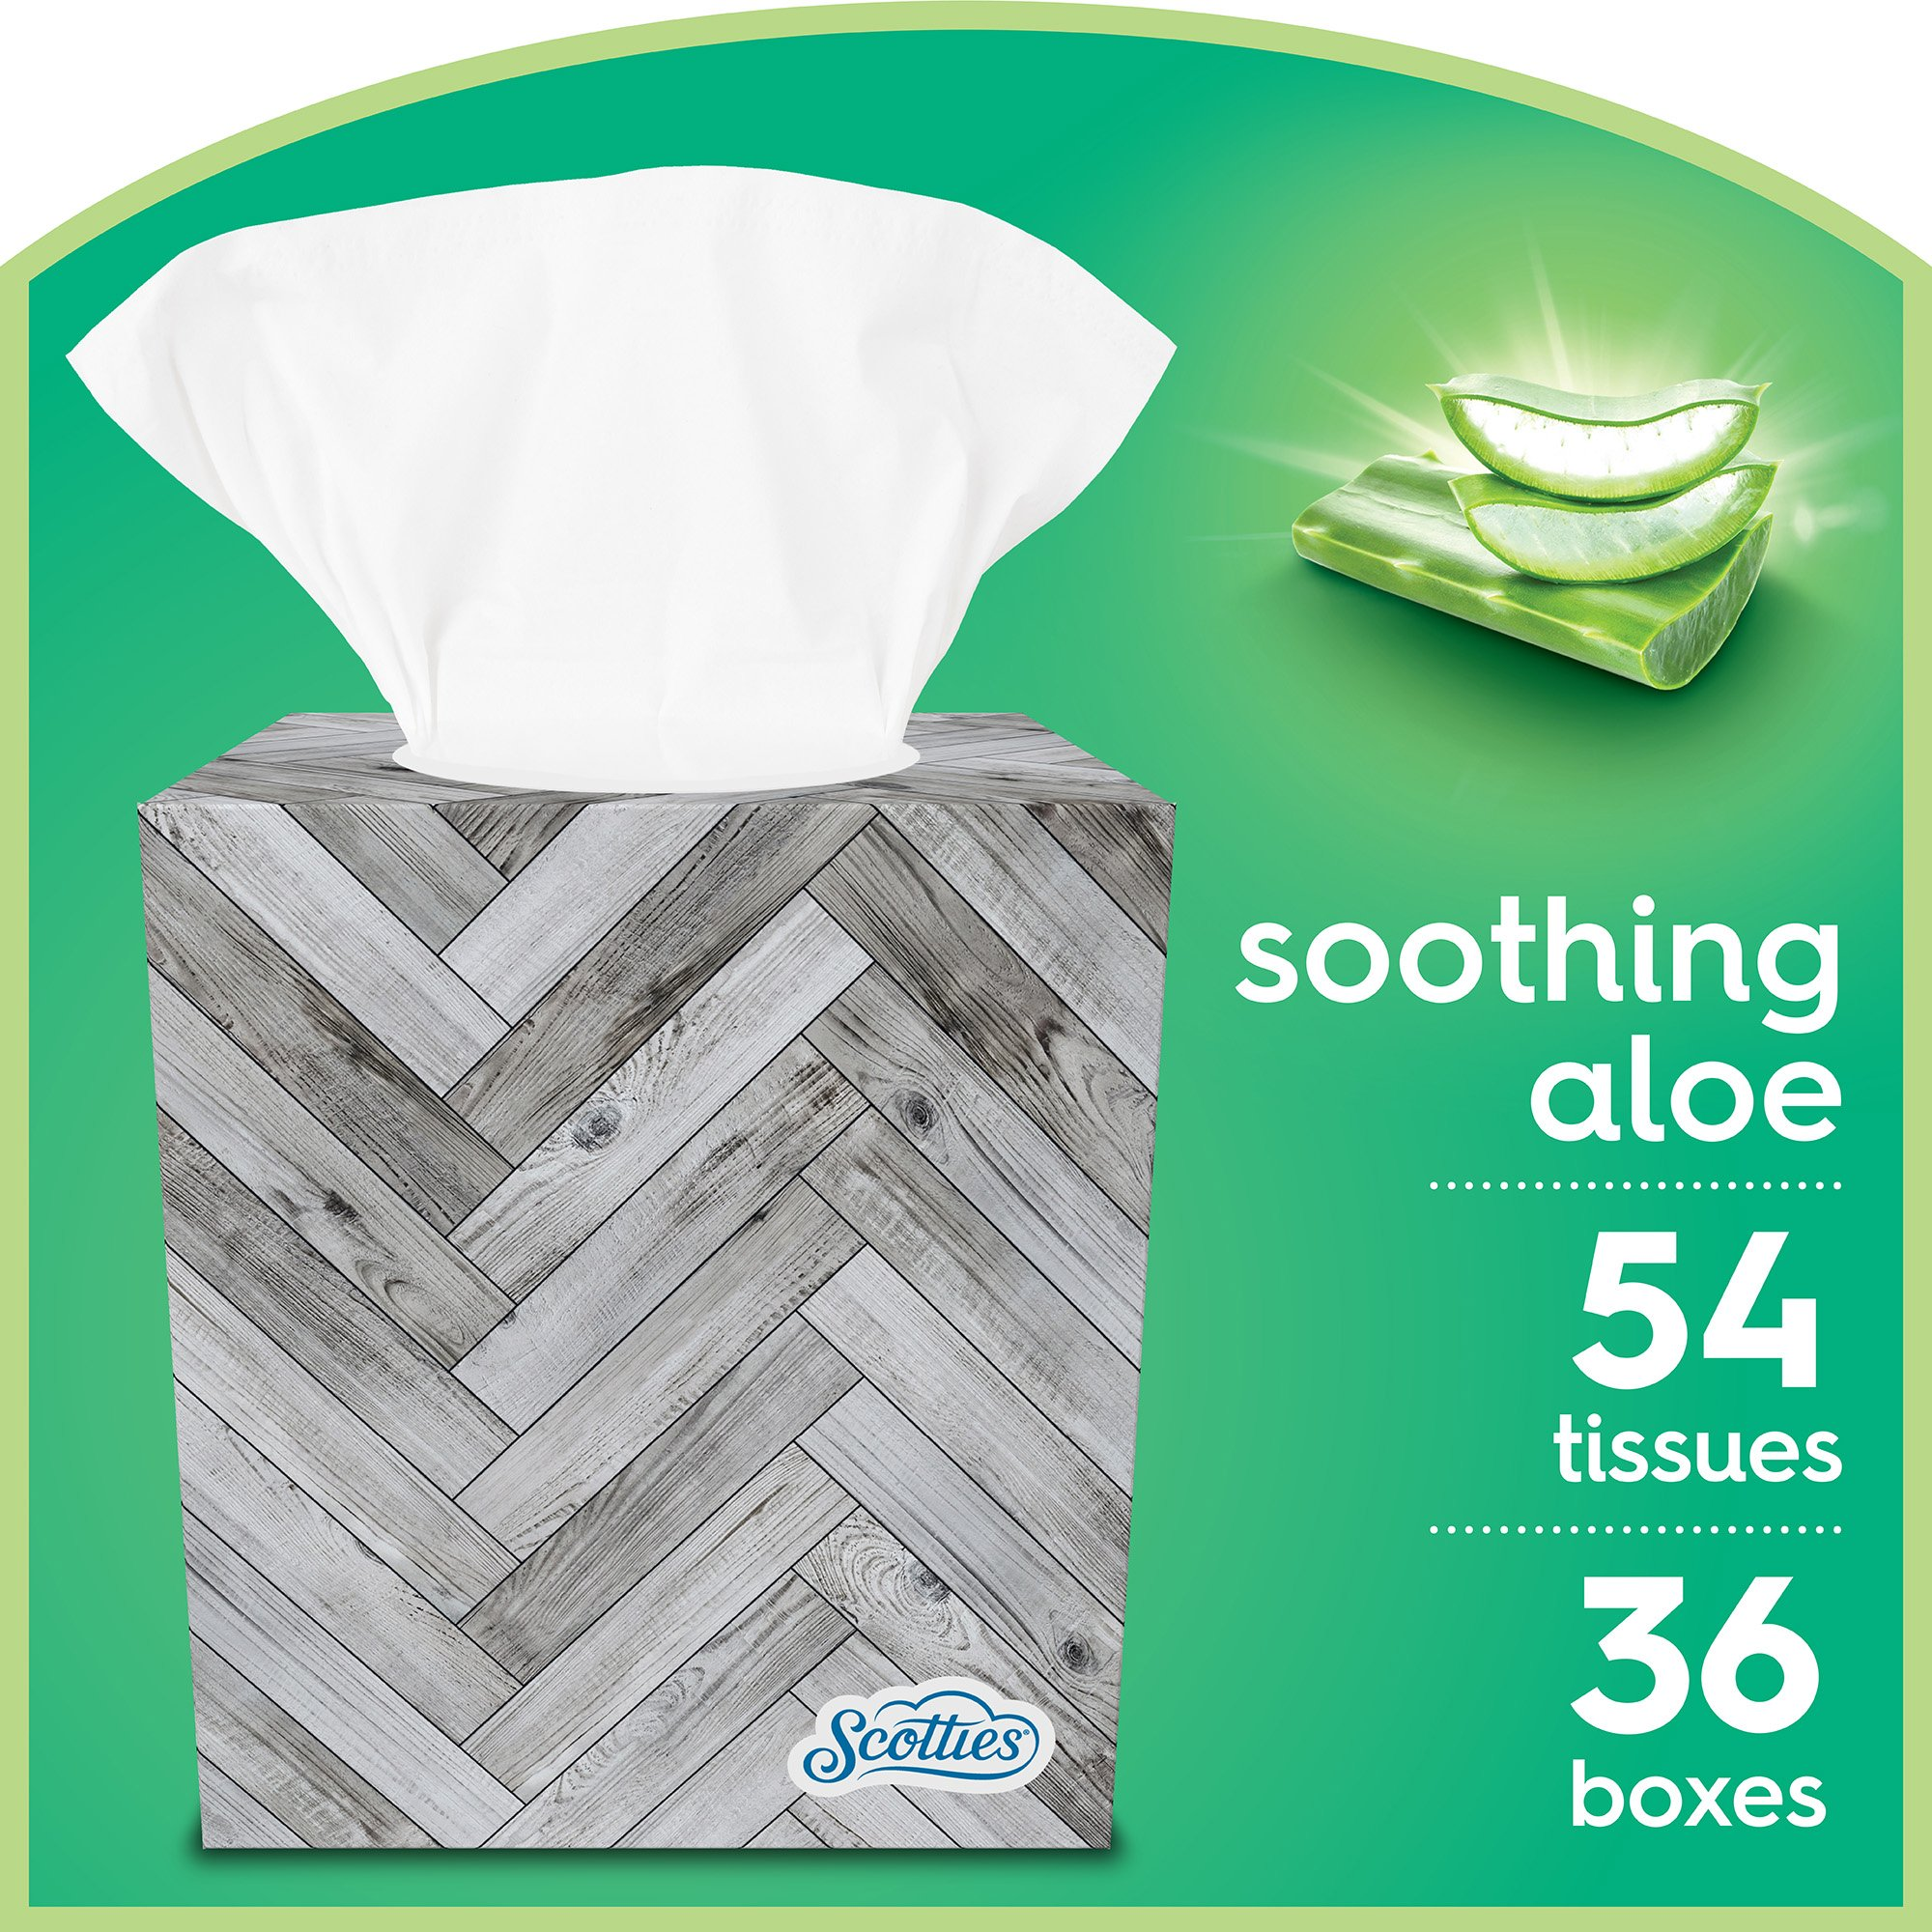 Scotties Soothing Aloe Facial Tissues, 54 Tissues per Box (Pack of 36)